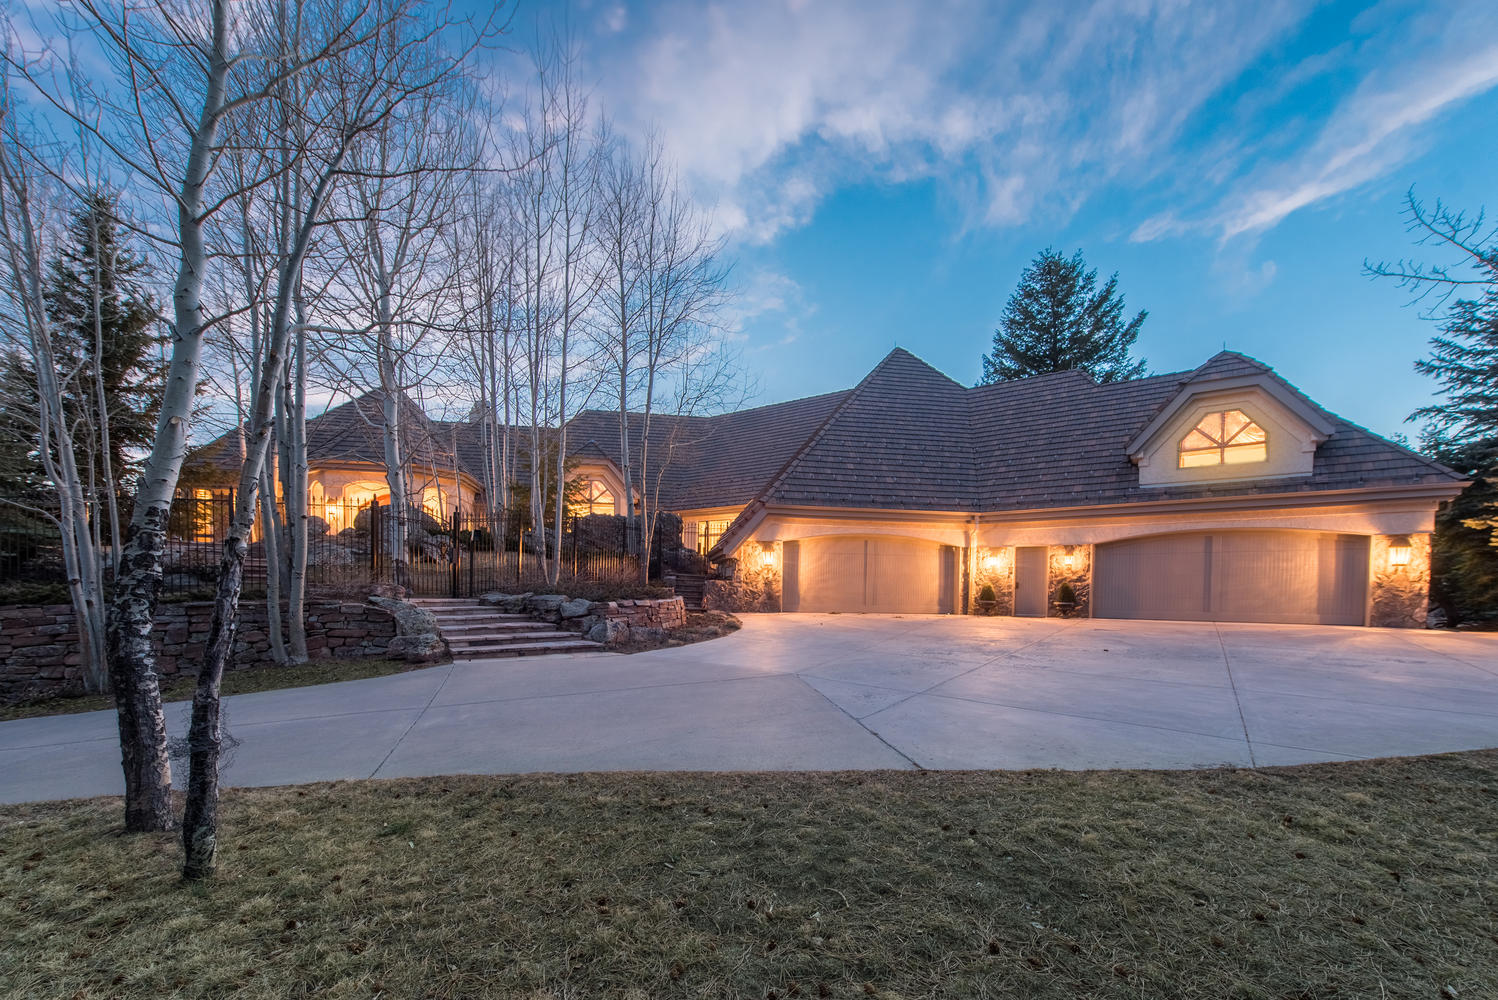 Single Family Home for Active at Majestic Masterpiece designed by renowned Sears Barrett Architects 31135 Skokie Lane Evergreen, Colorado 80439 United States